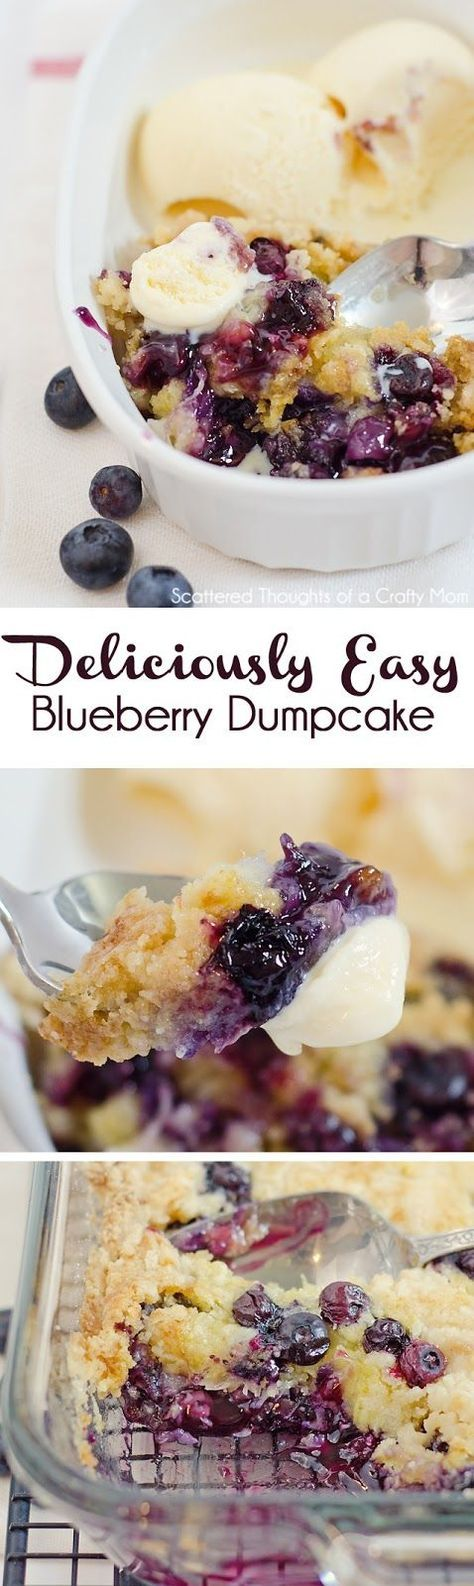 The most delicious Blueberry Dump Cake recipe ever!  #blueberries #dessertrecipes